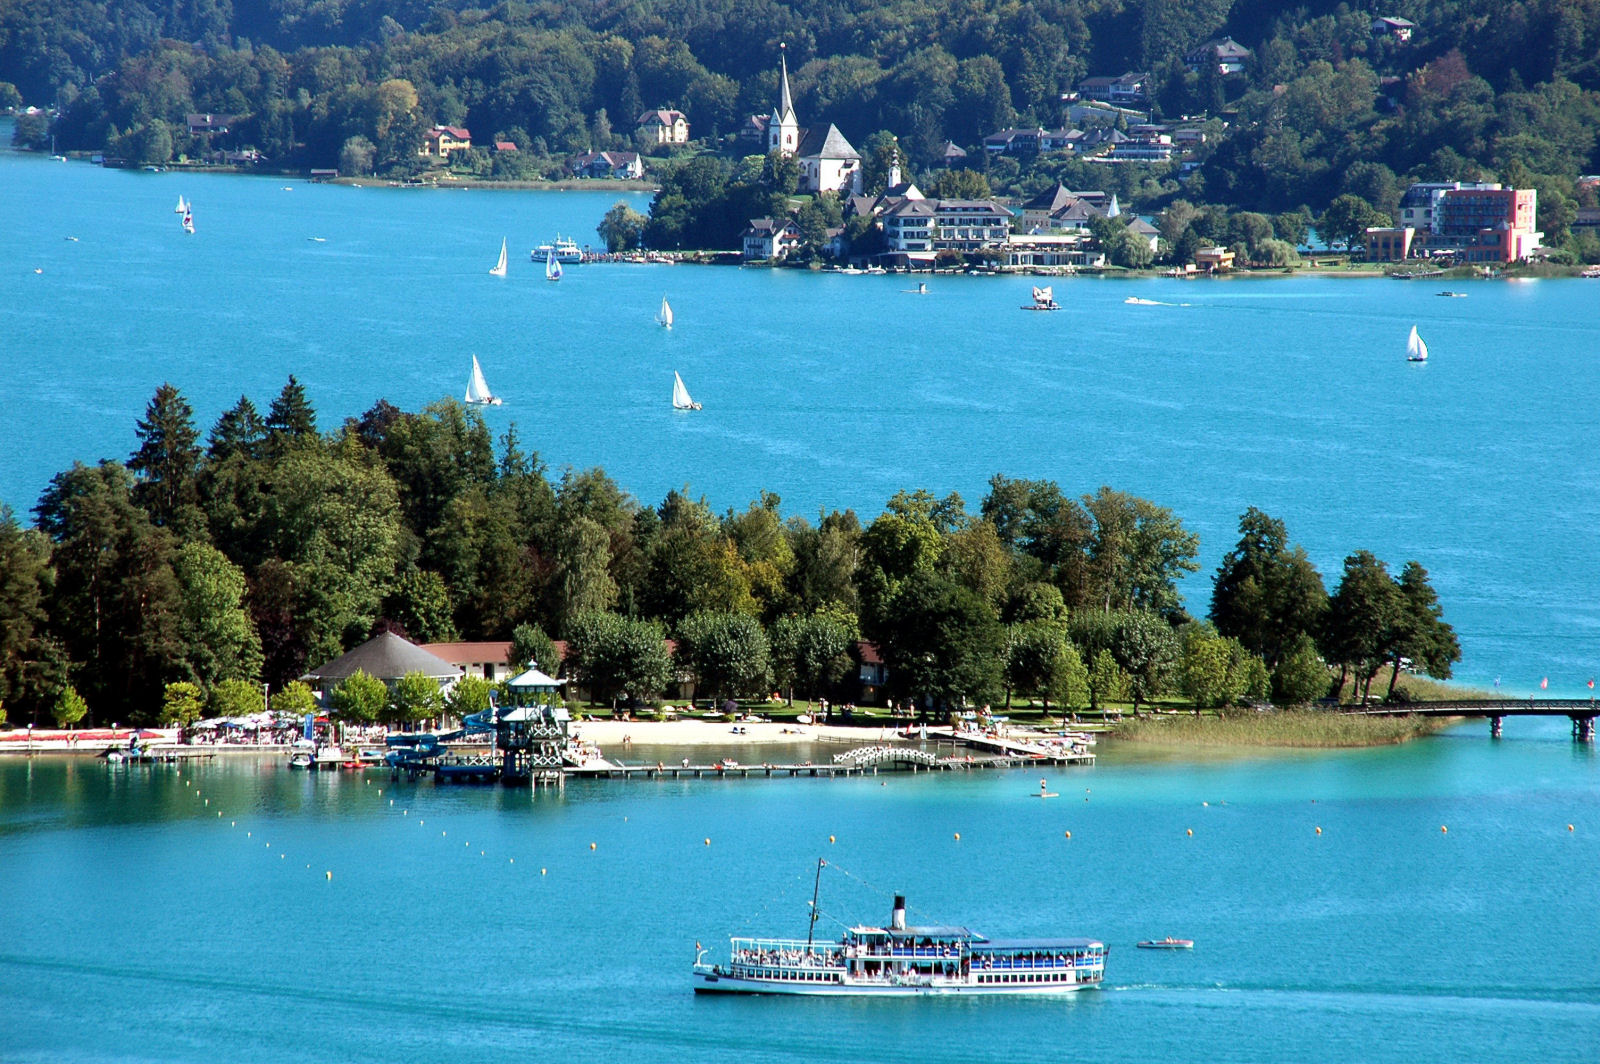 lake-woerthersee-thalia-ship-carinthia